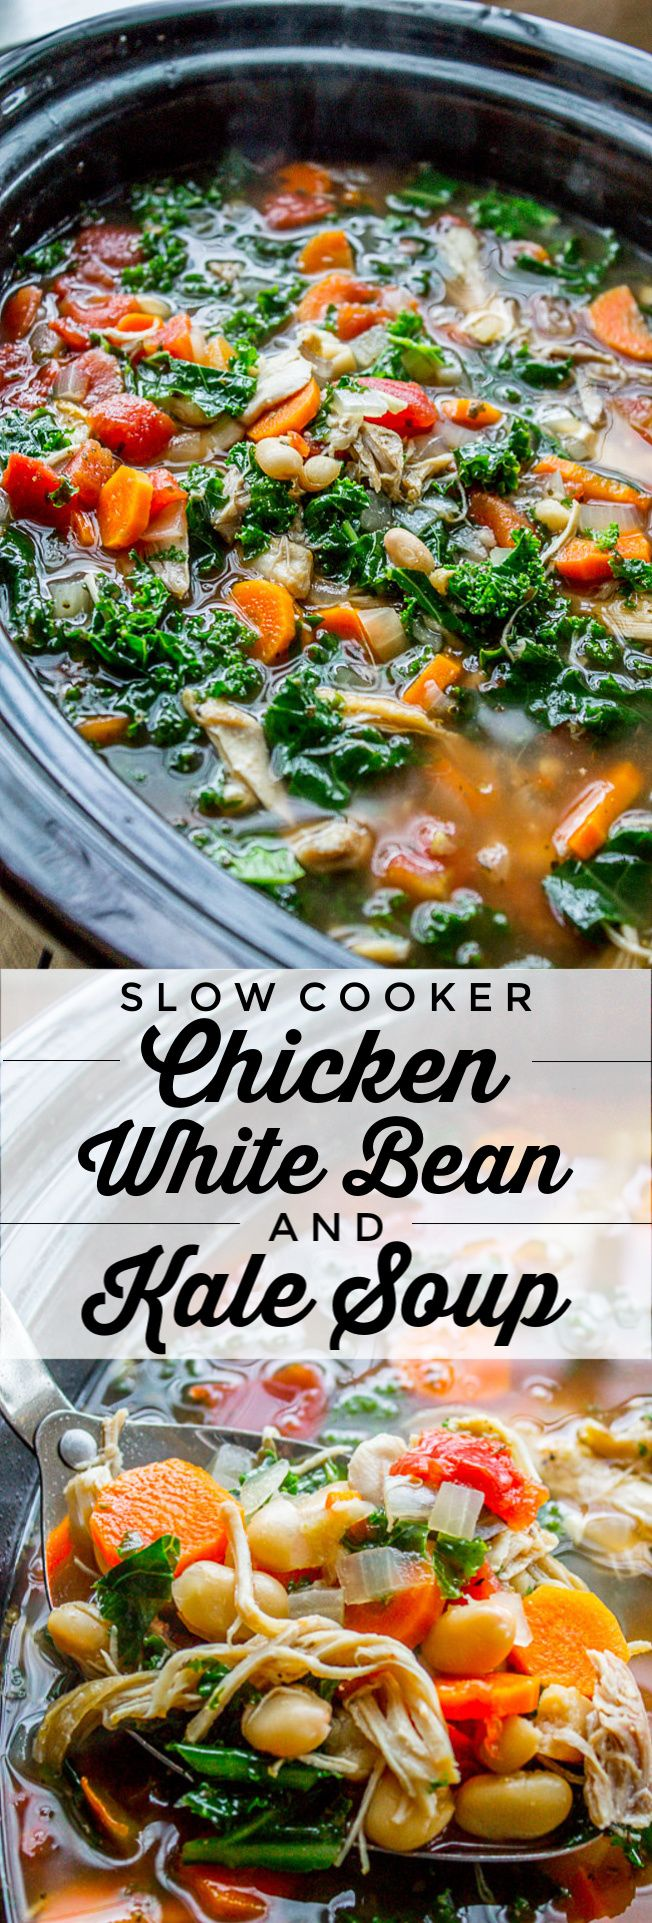 Photo of Chicken, White Bean & Kale Soup (Slow Cooker) from The Food Charlatan